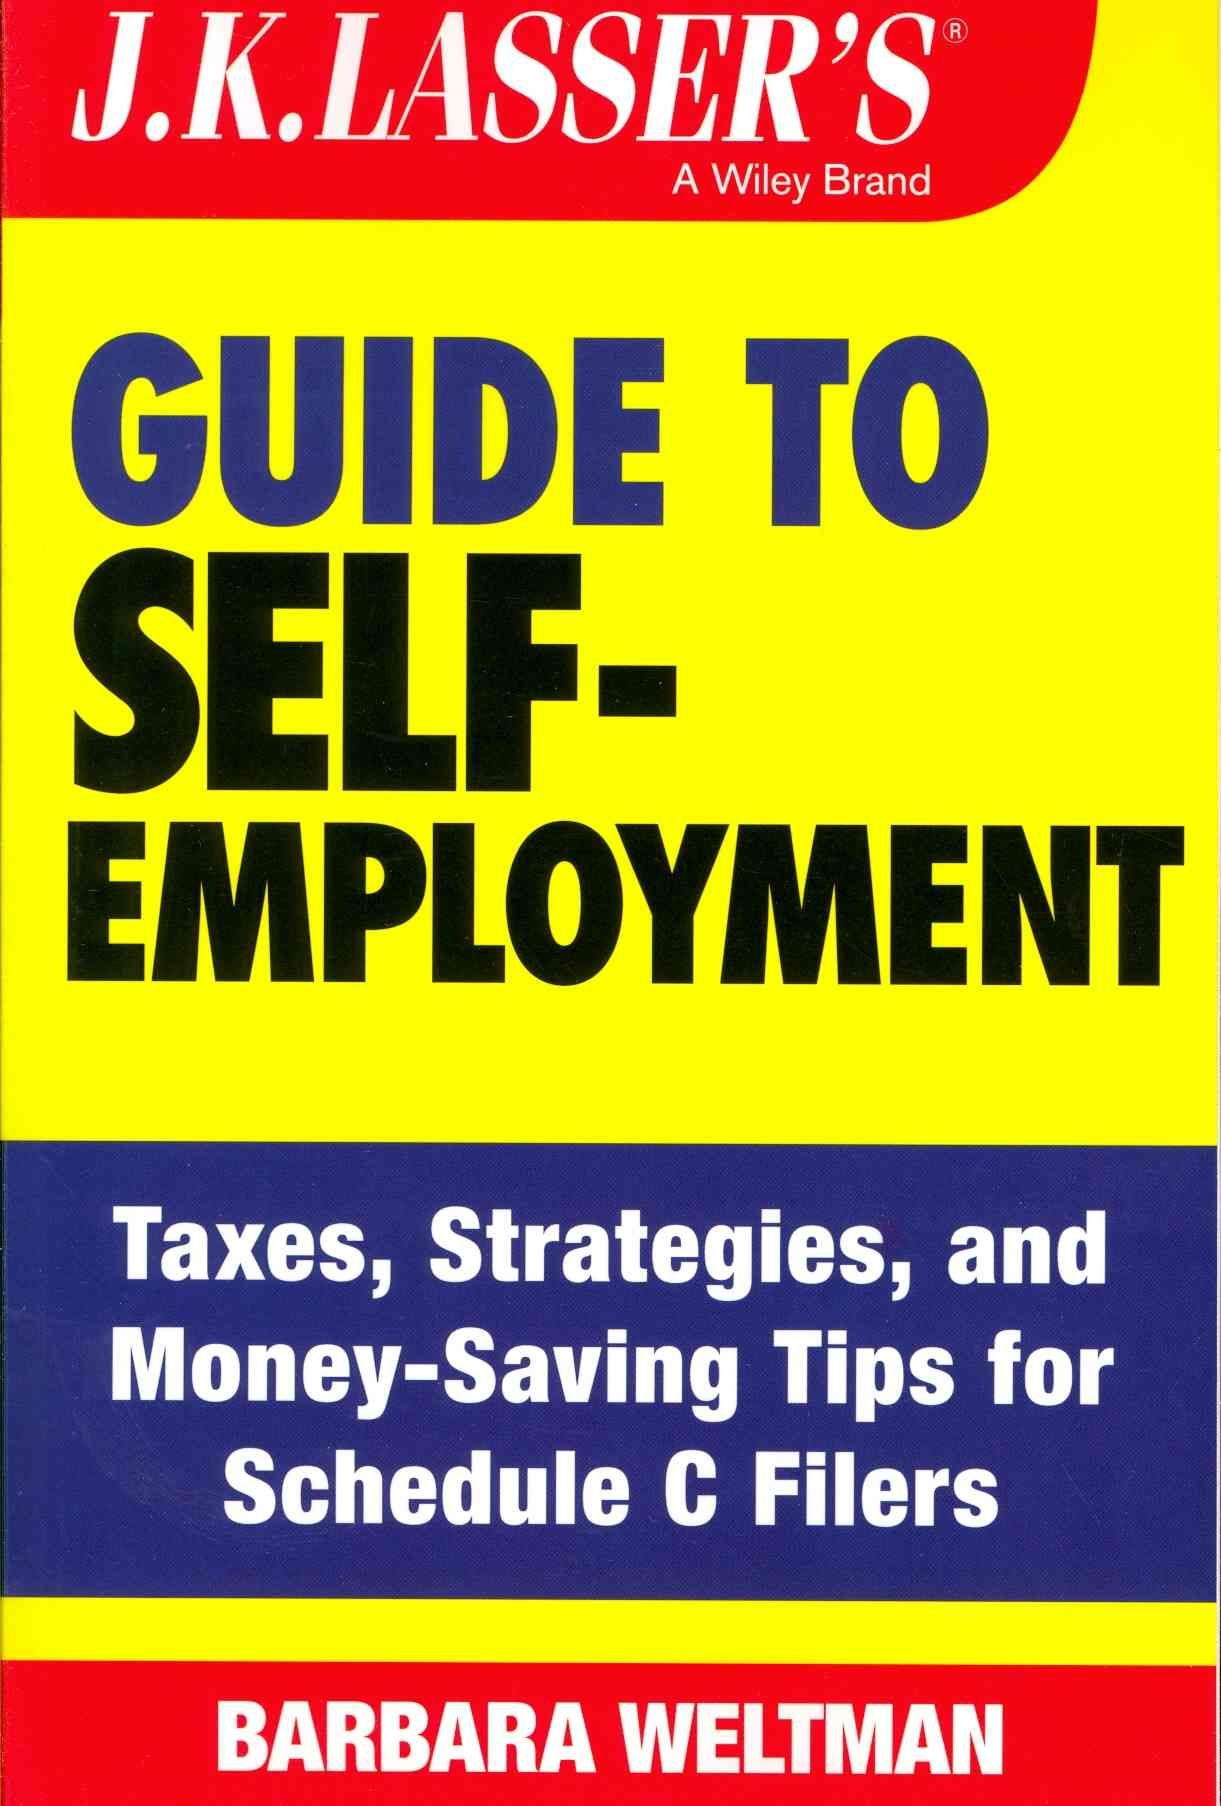 Tax facts and strategies every selfemployed person needs